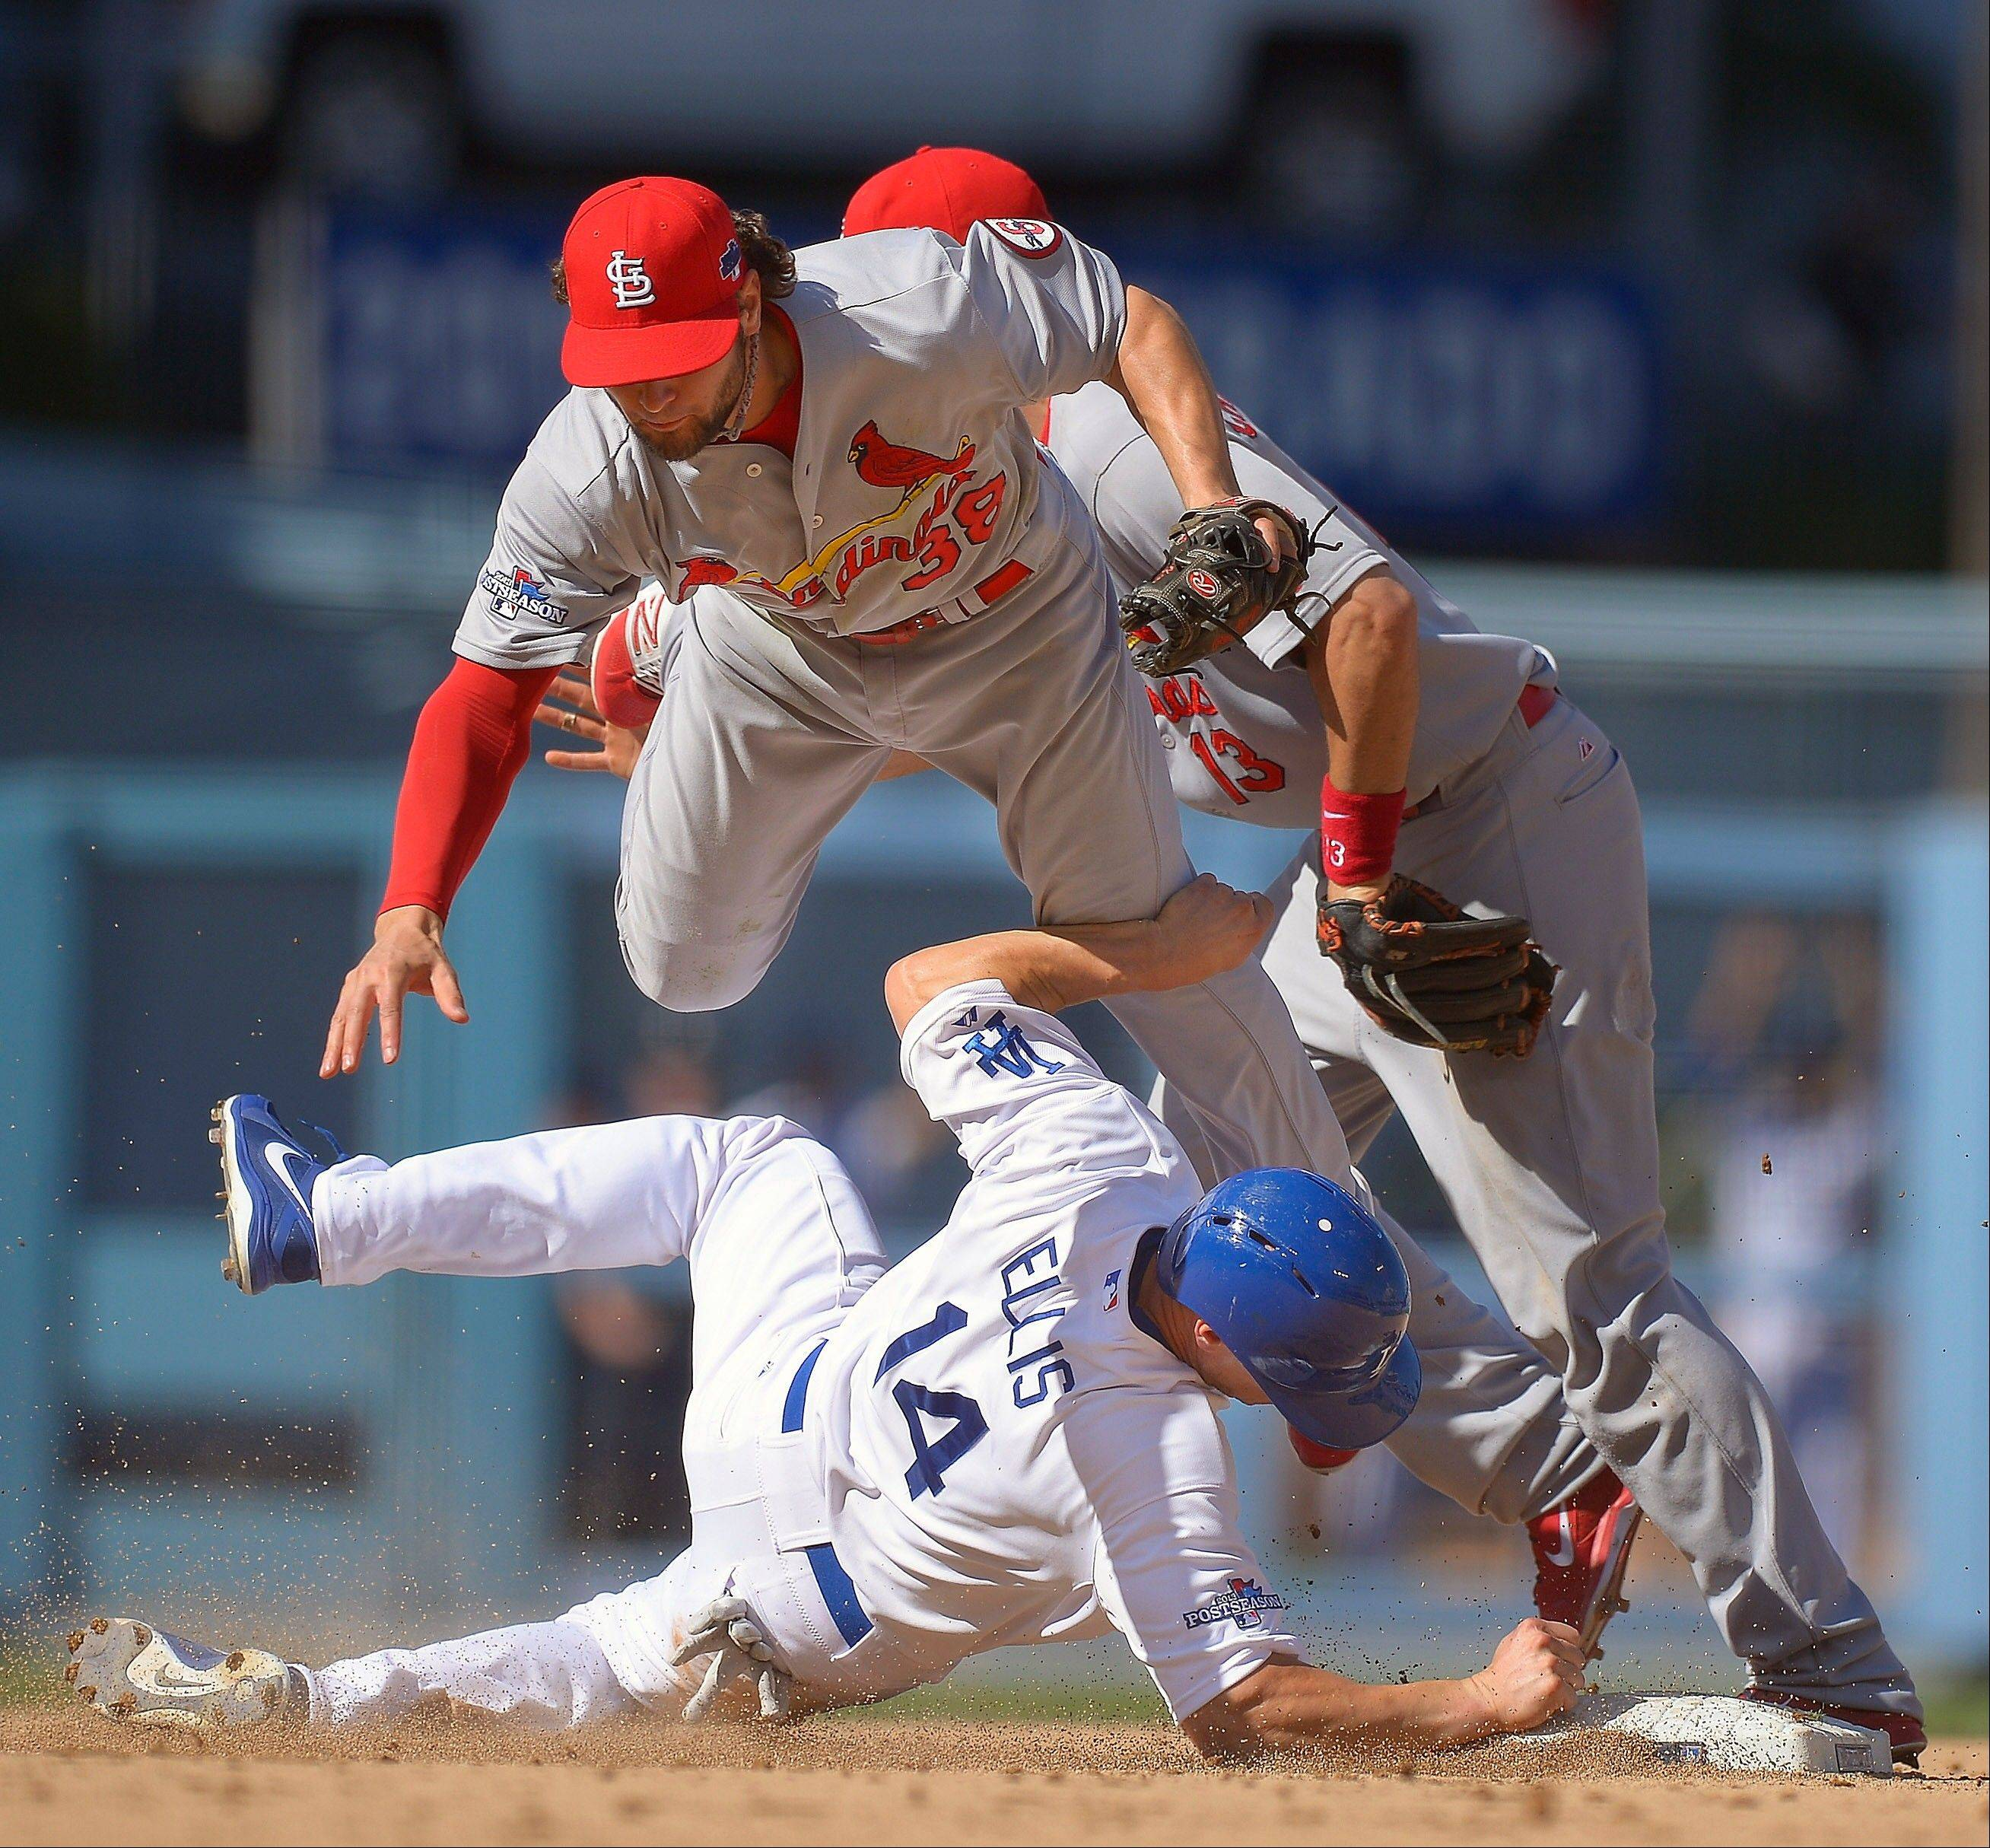 The Dodgers' Mark Ellis tries to break up a double play and gets tangled with the Cardinals' Pete Kozma (38) and Matt Carpenter (13) during the third inning.